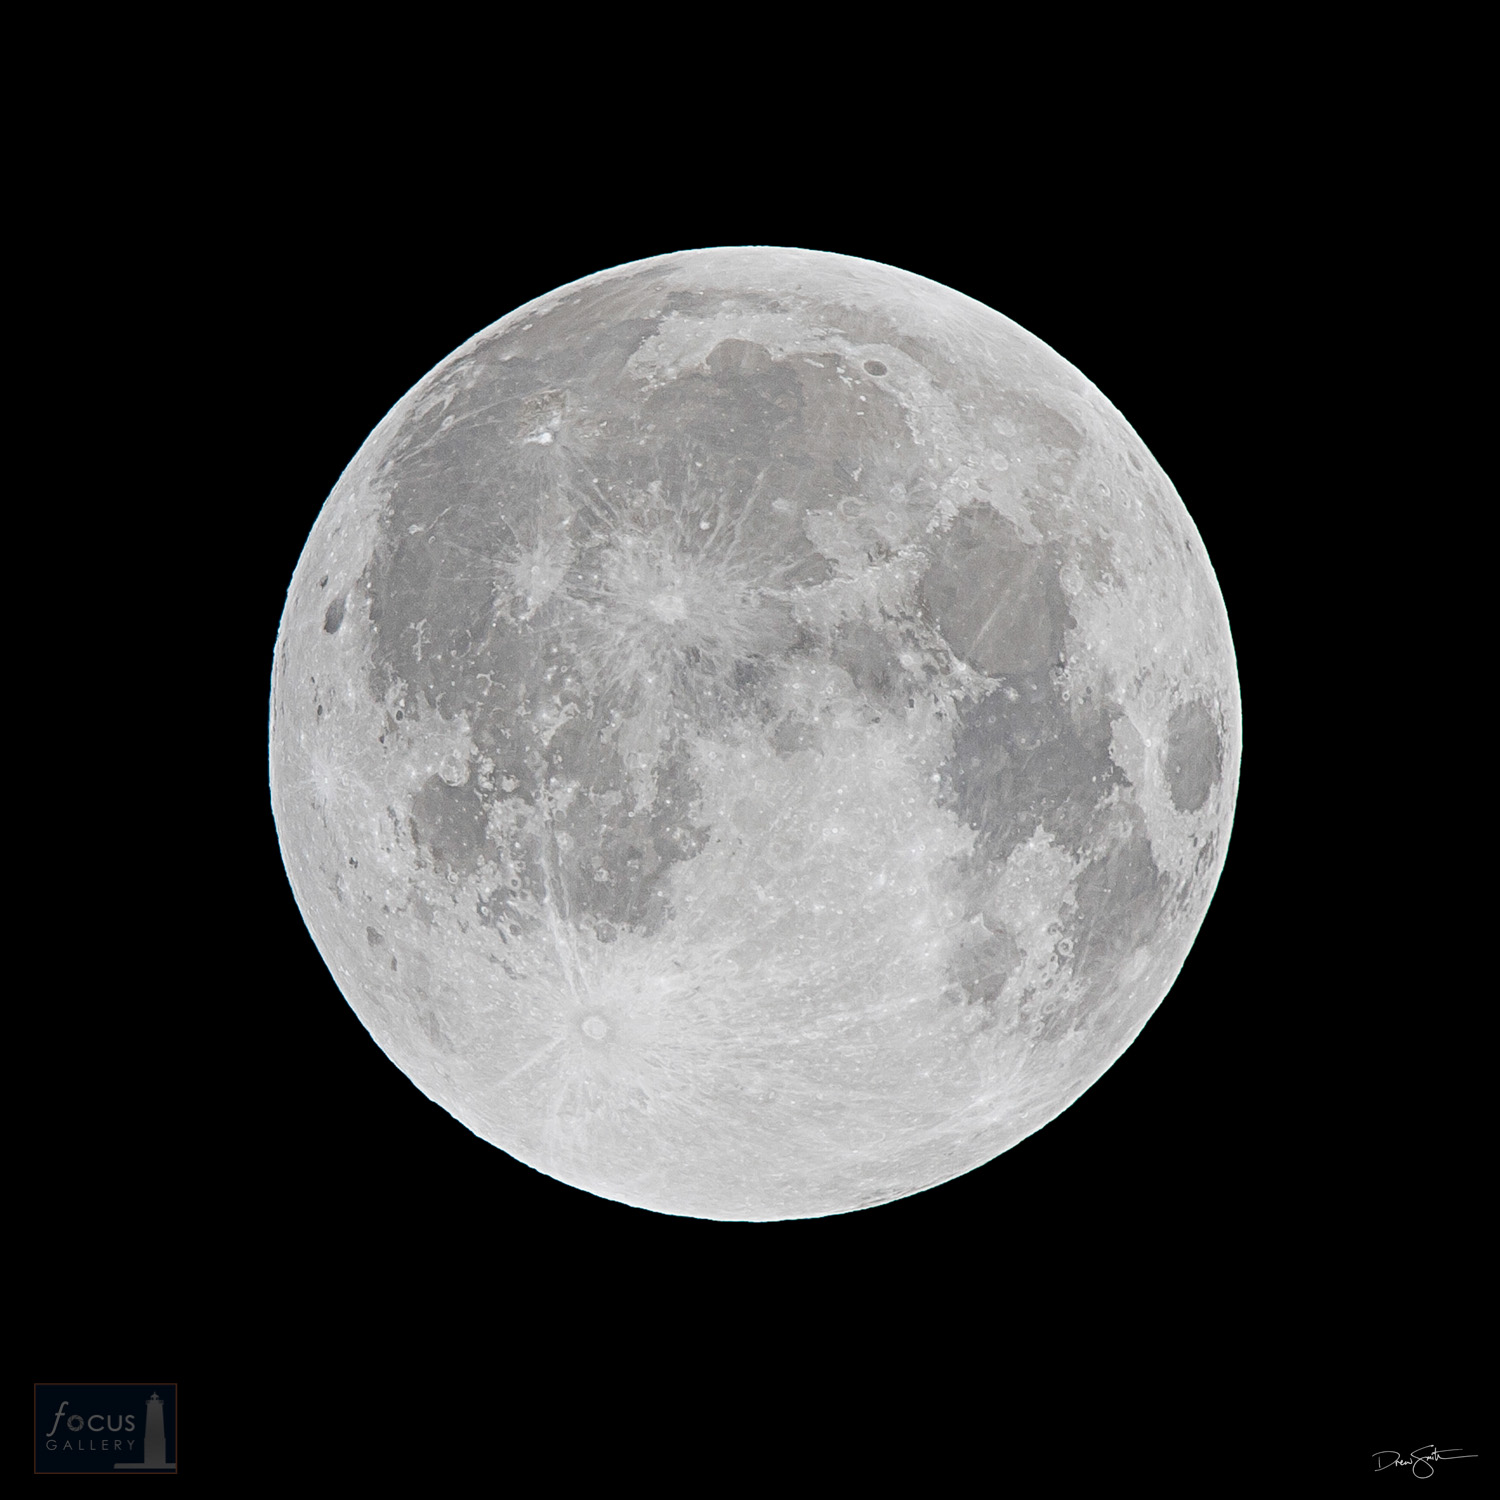 The full moon in detail.